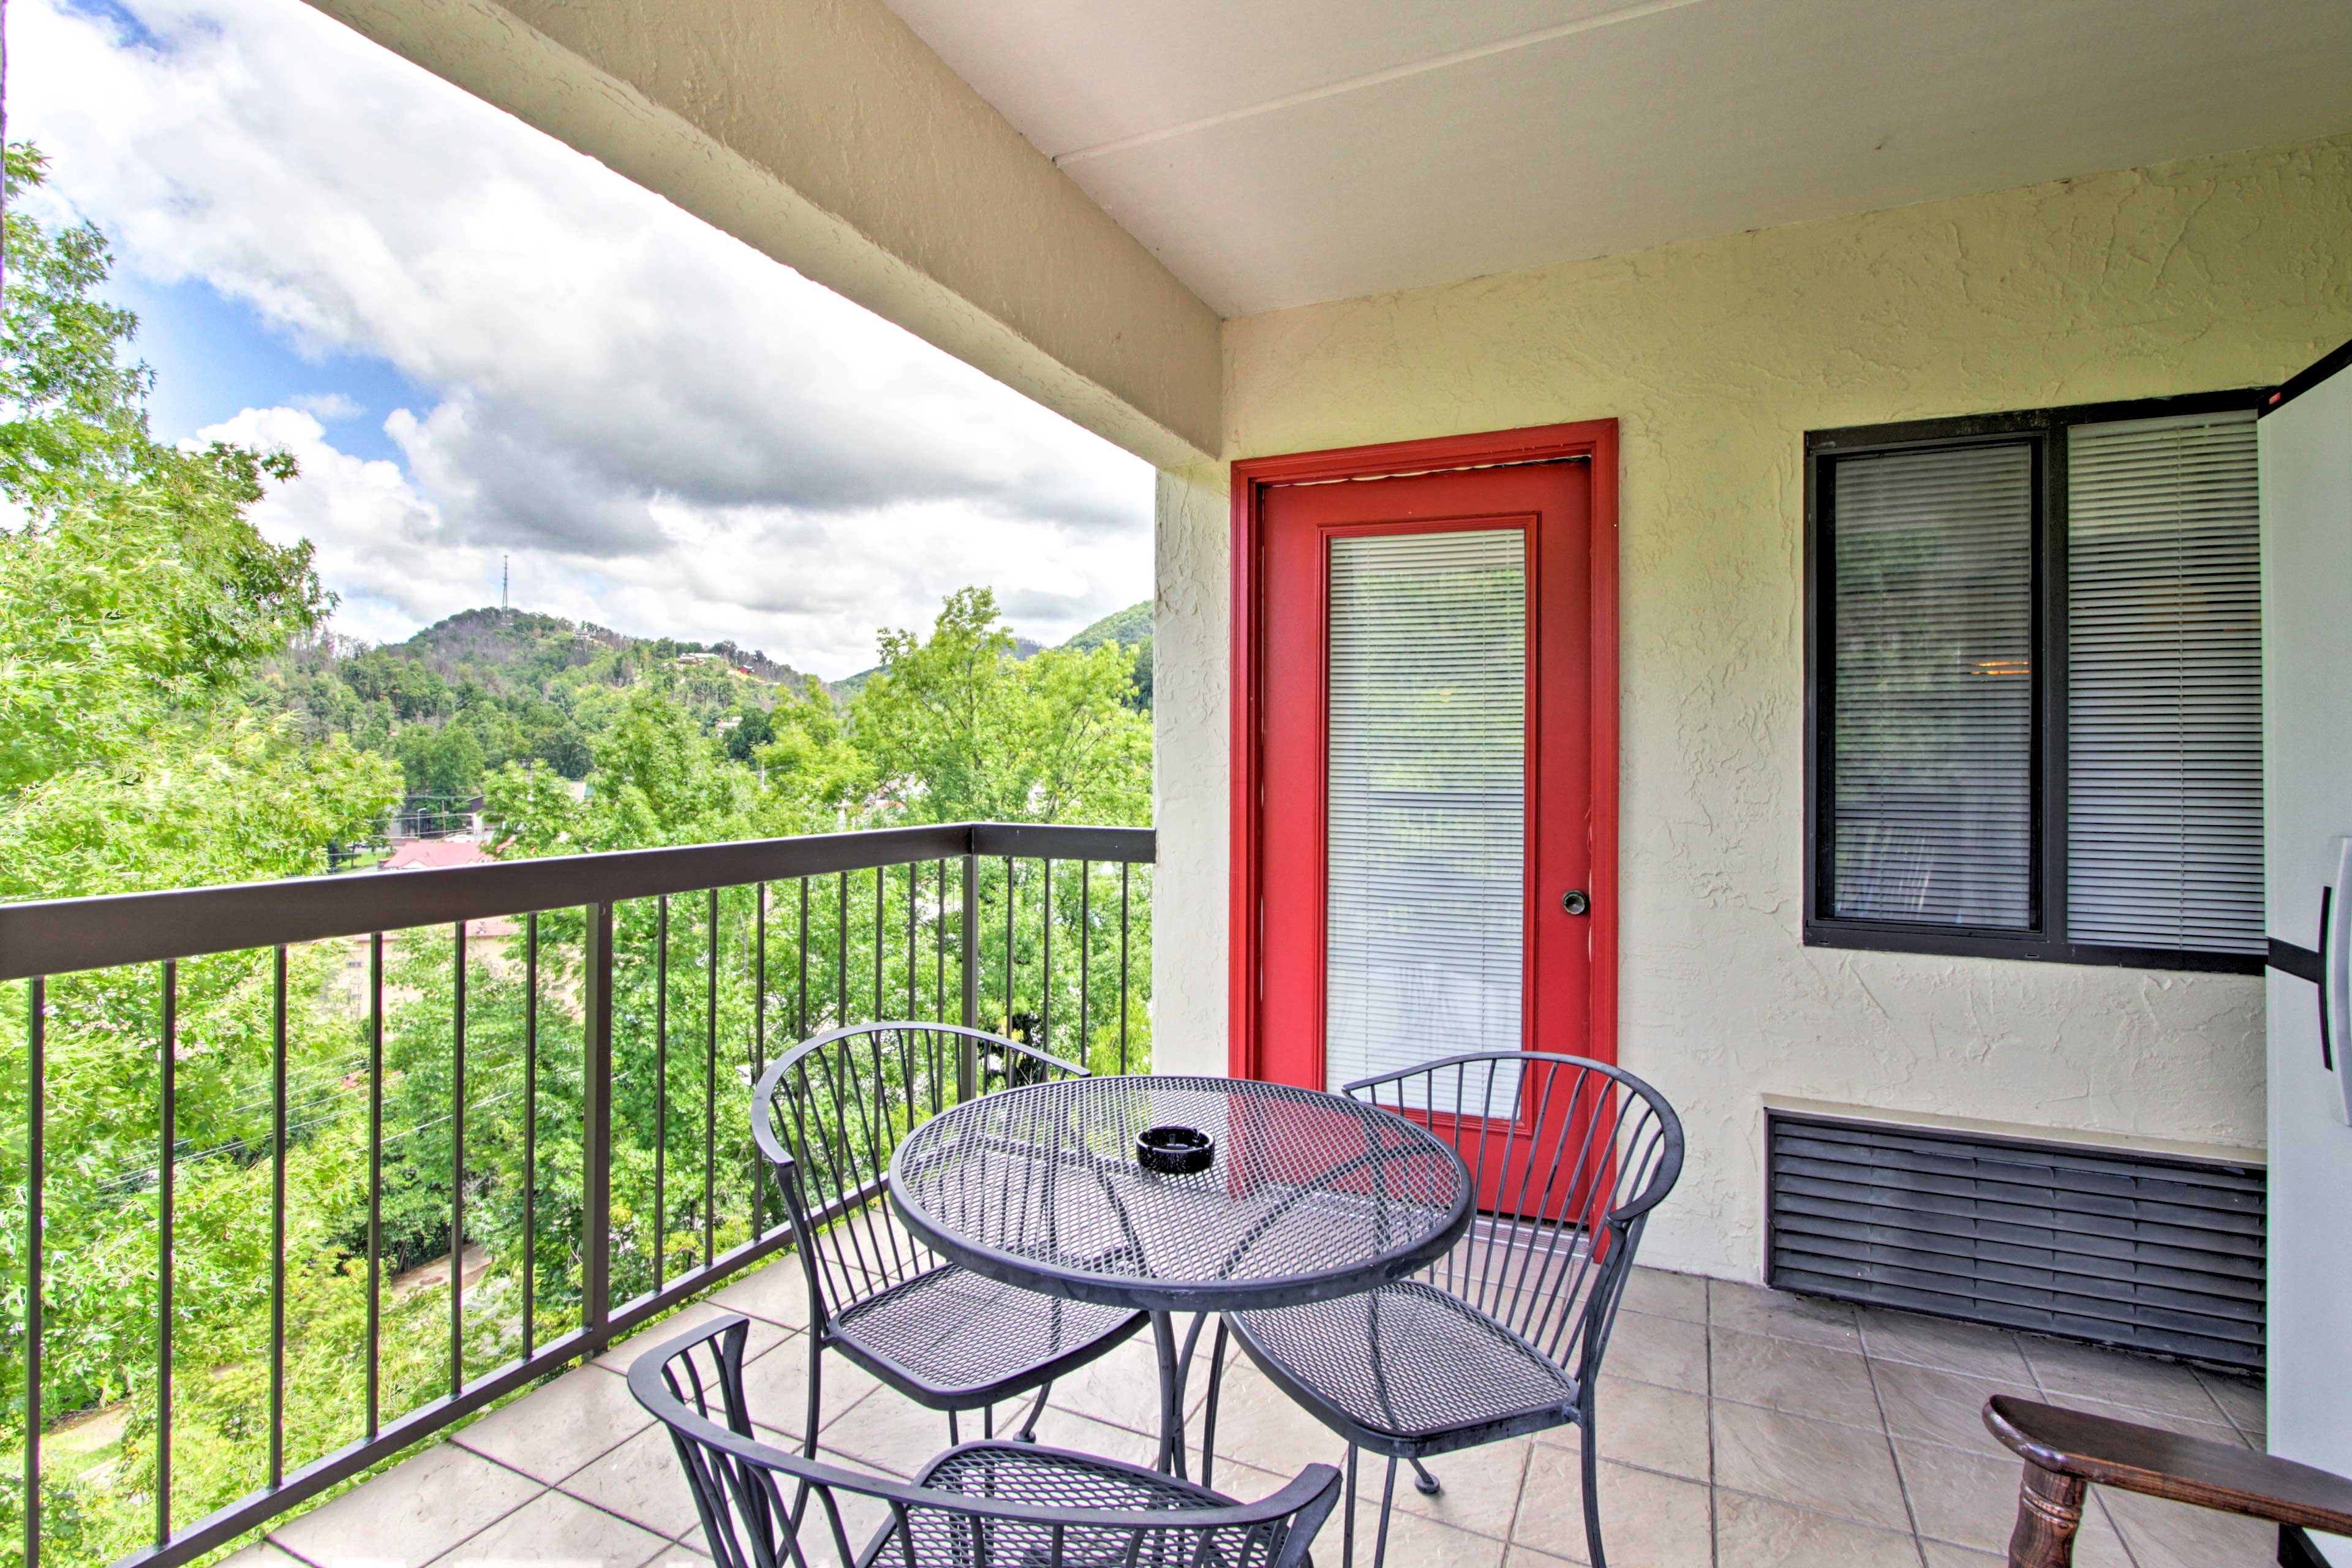 Enjoy a meal at this quaint patio table in the fresh Tennessee air.